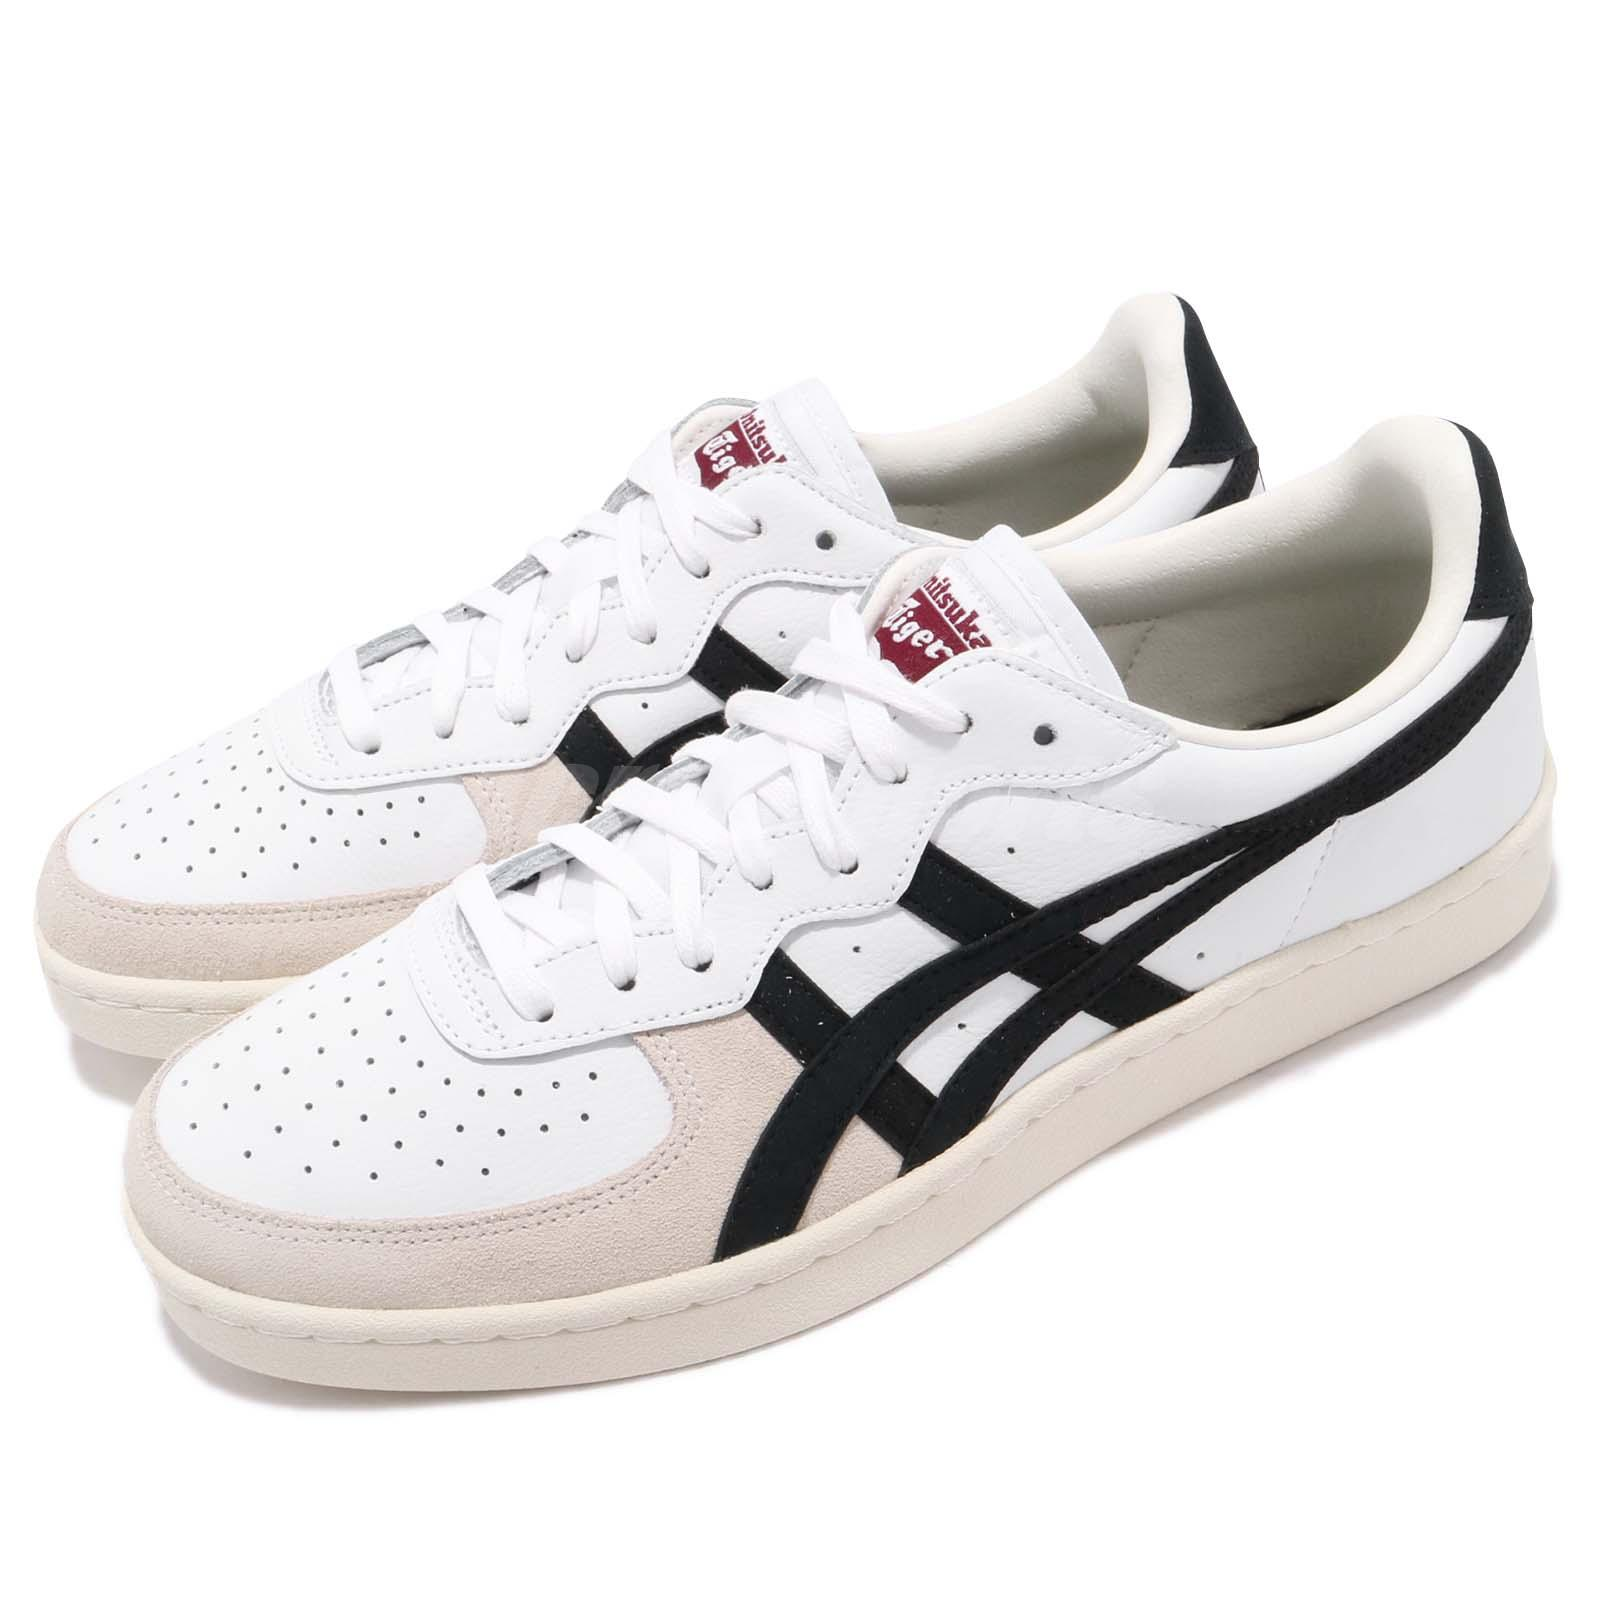 Details about Asics Onitsuka Tiger GSM White Black Men Women Vintage Shoes  Sneaker D5K2Y-0190